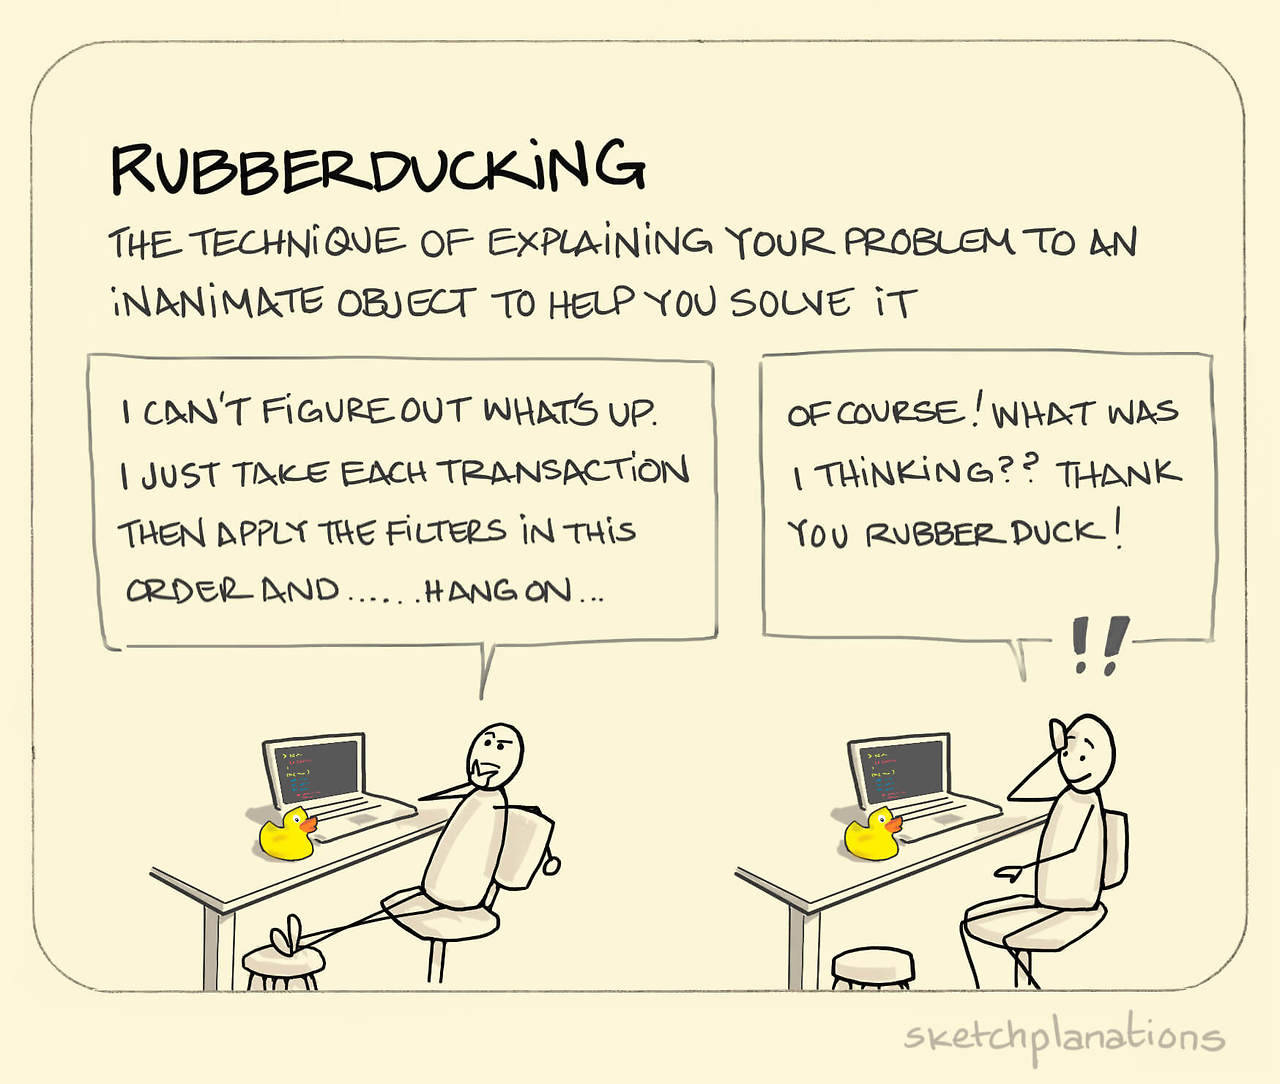 Rubberducking is a way to ask yourself questions from a caring perspective